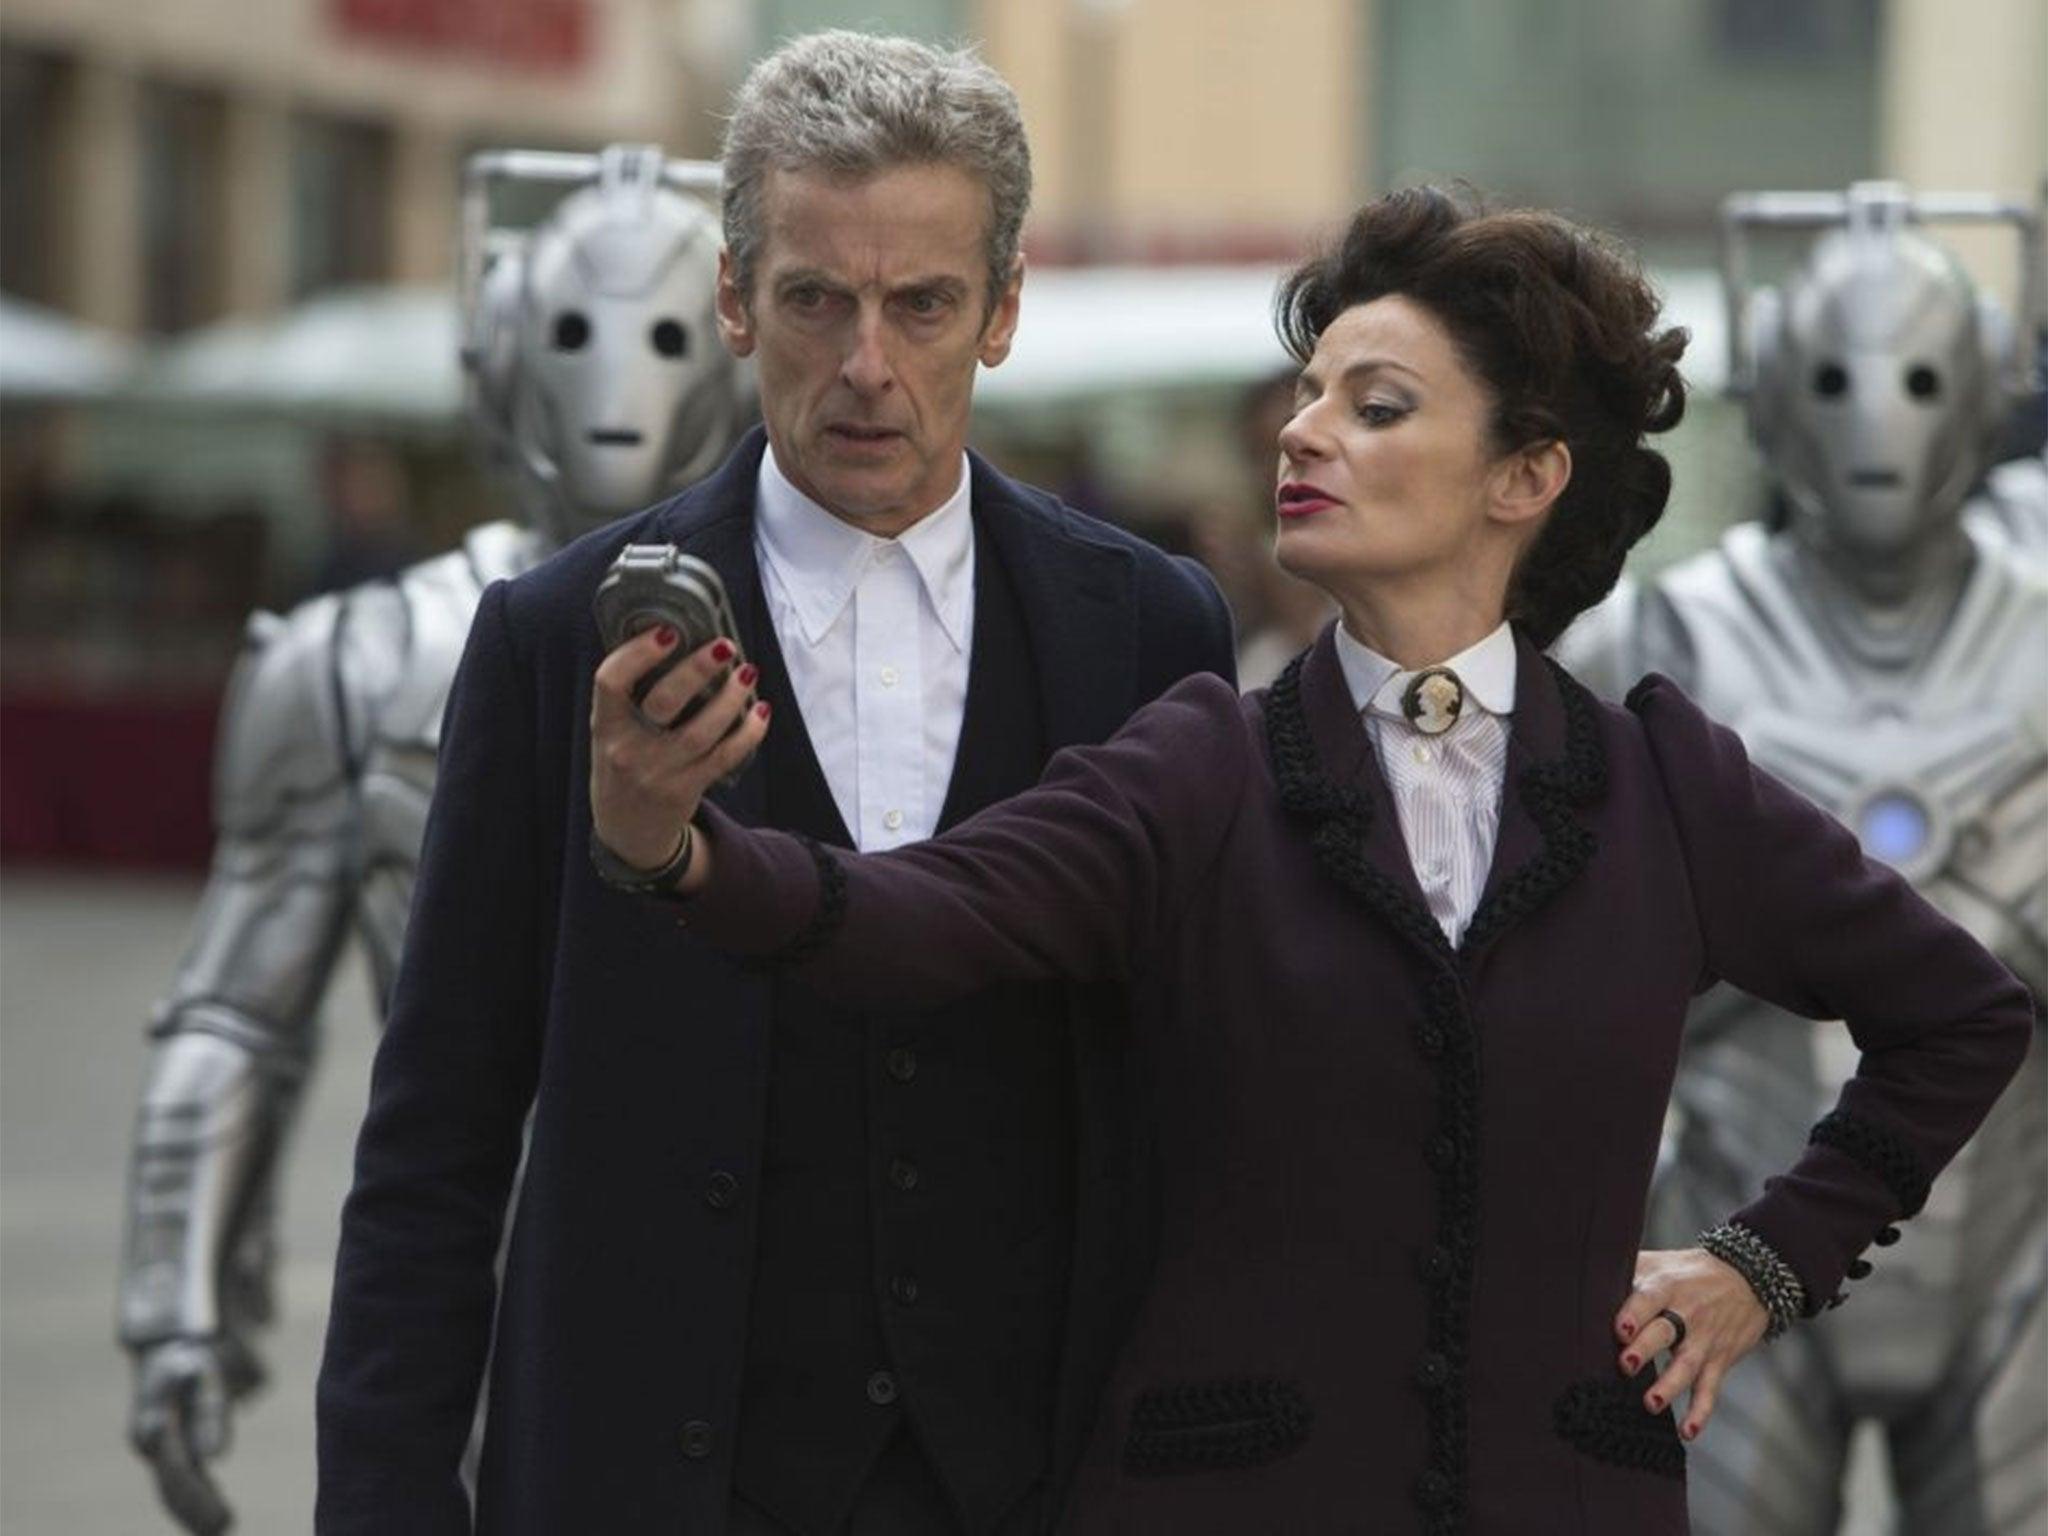 Doctor Who will continue for another five years at least, says Steven Moffat